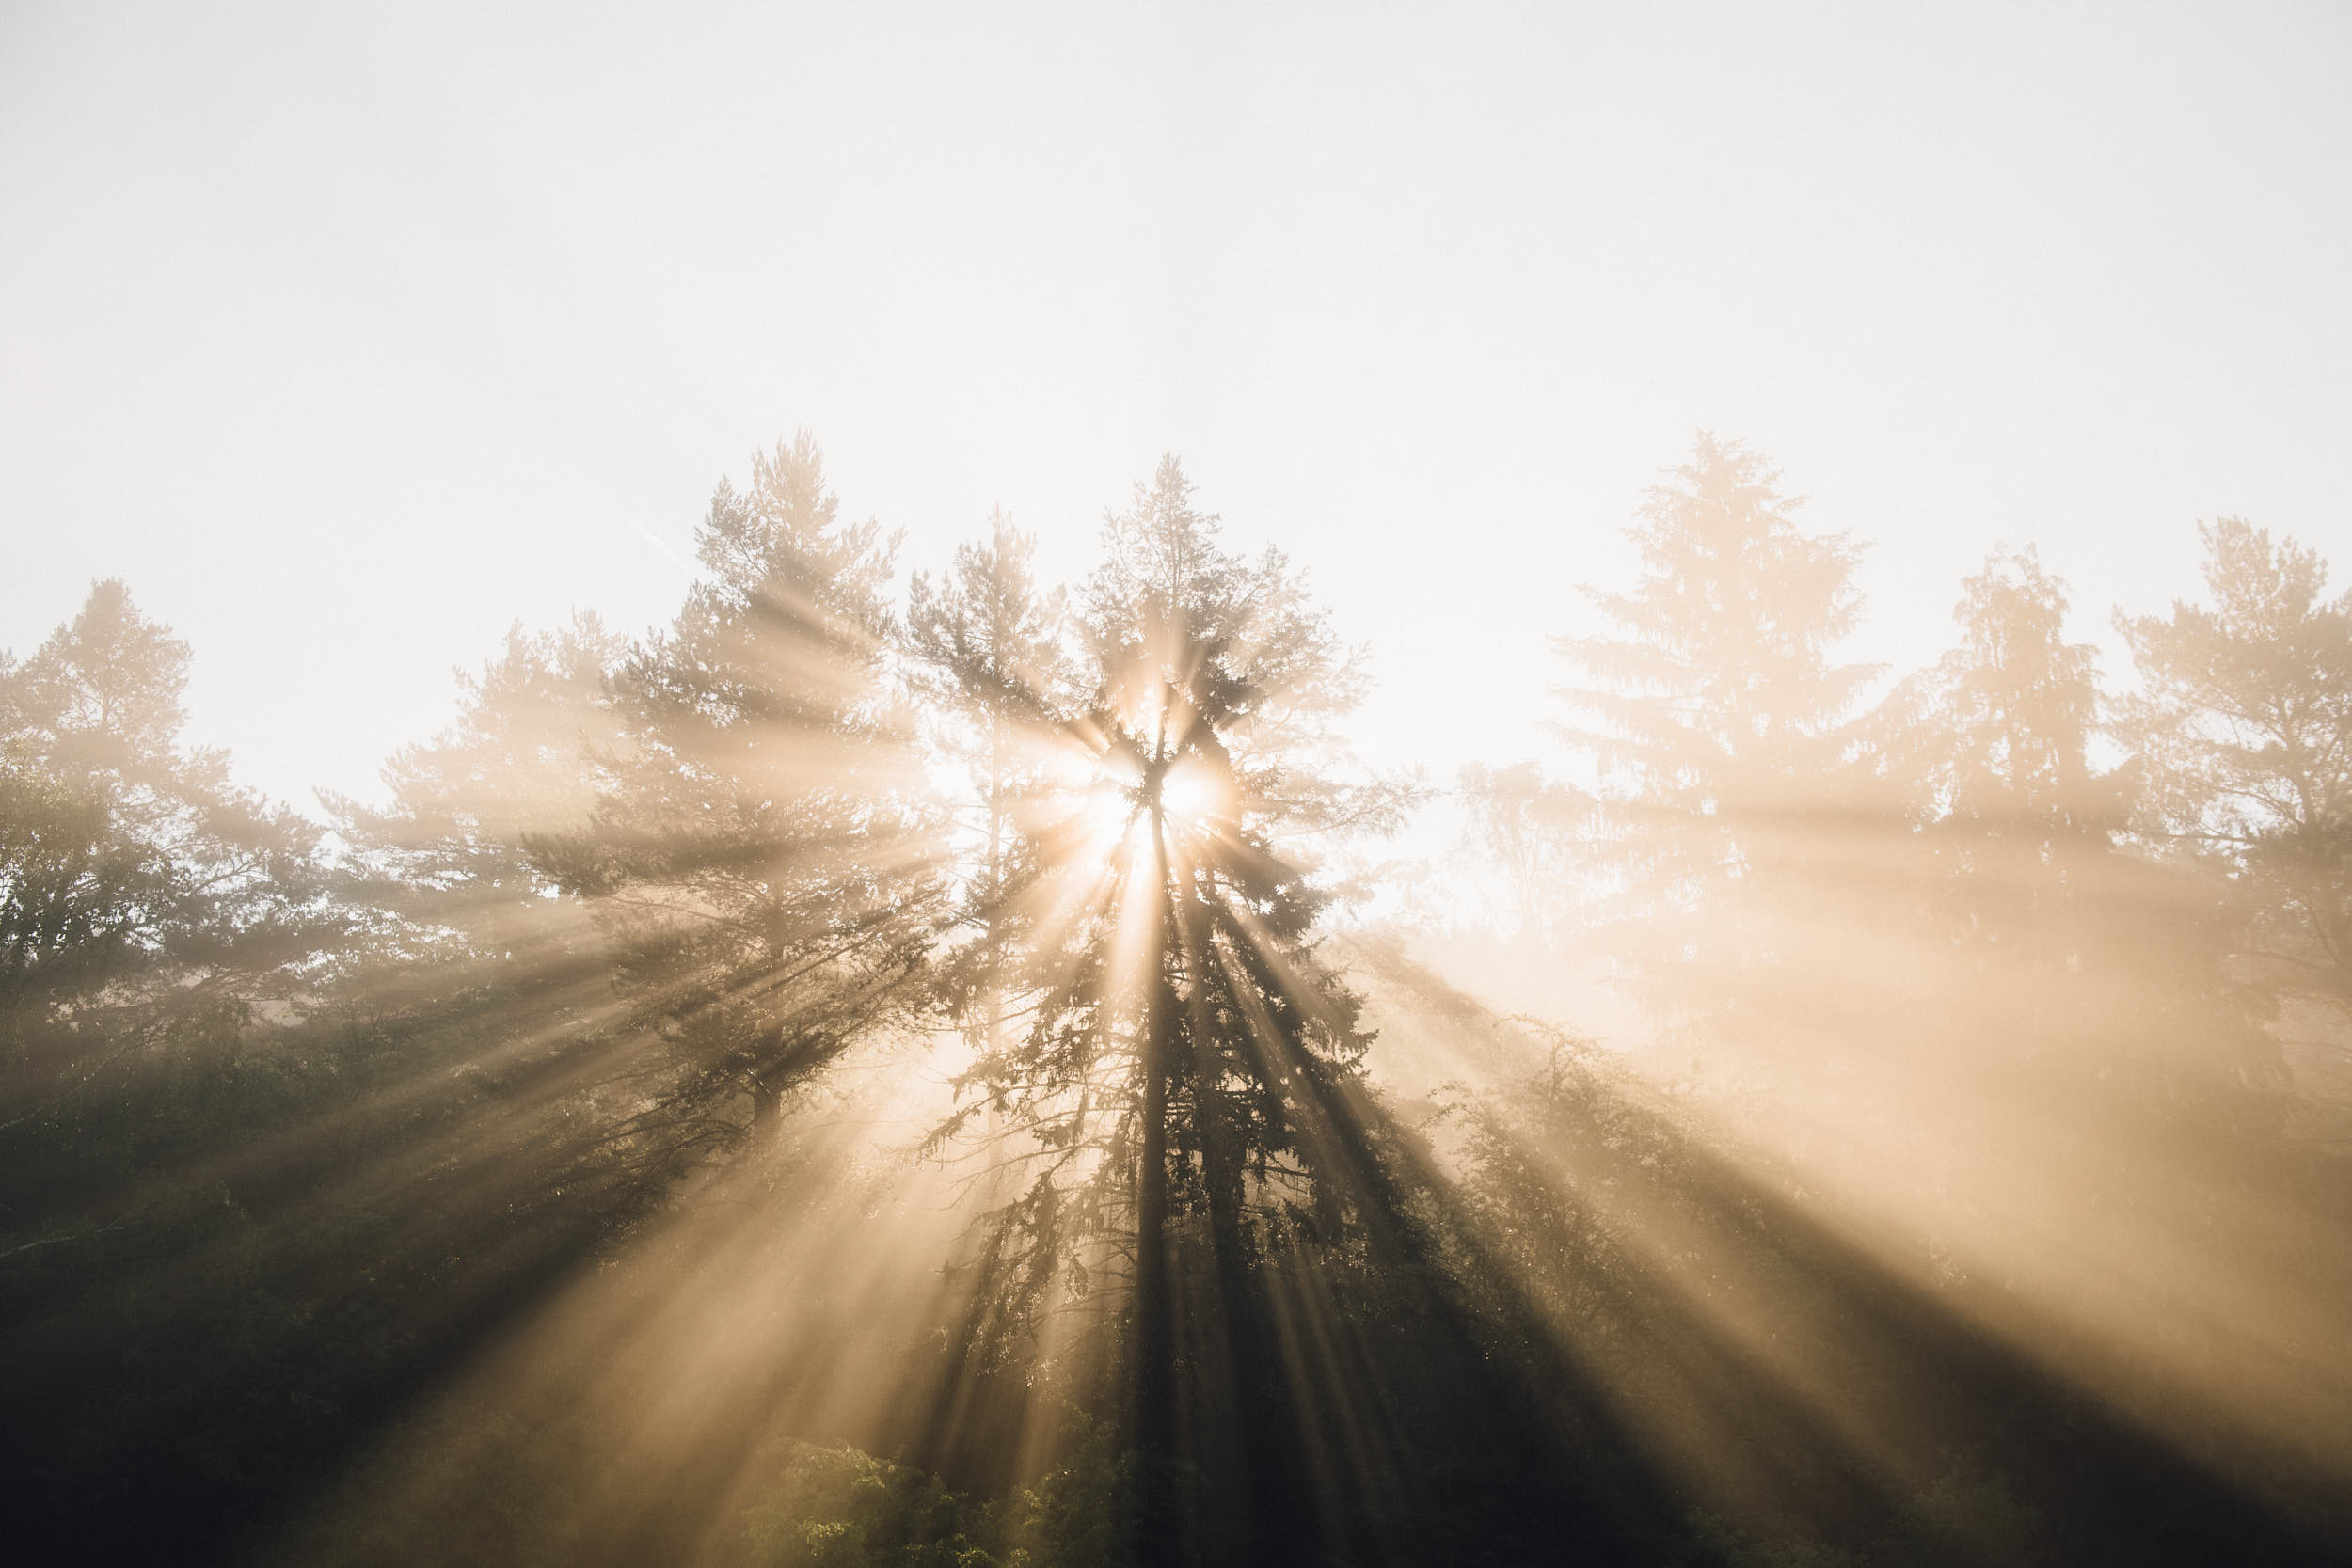 Sun light rays shining through trees in fog with dreamy atmosphere.